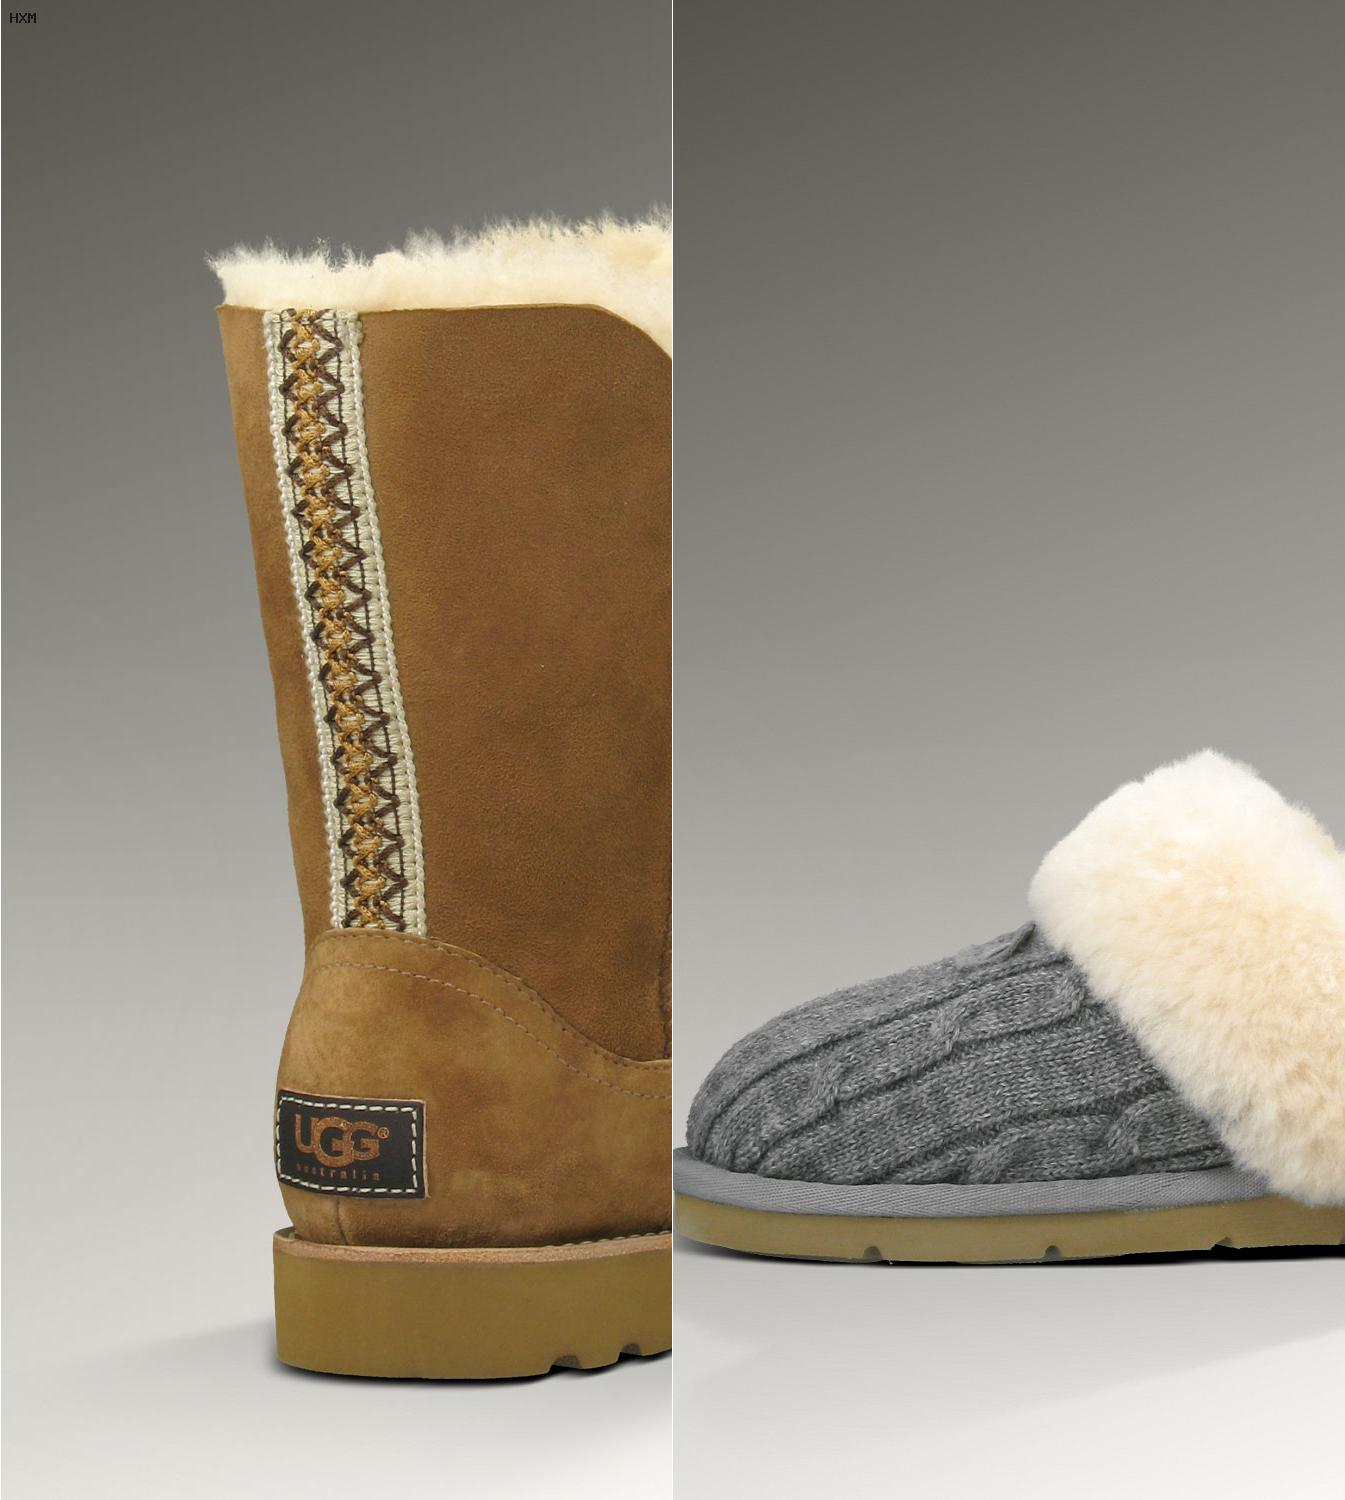 official ugg botas opiniones